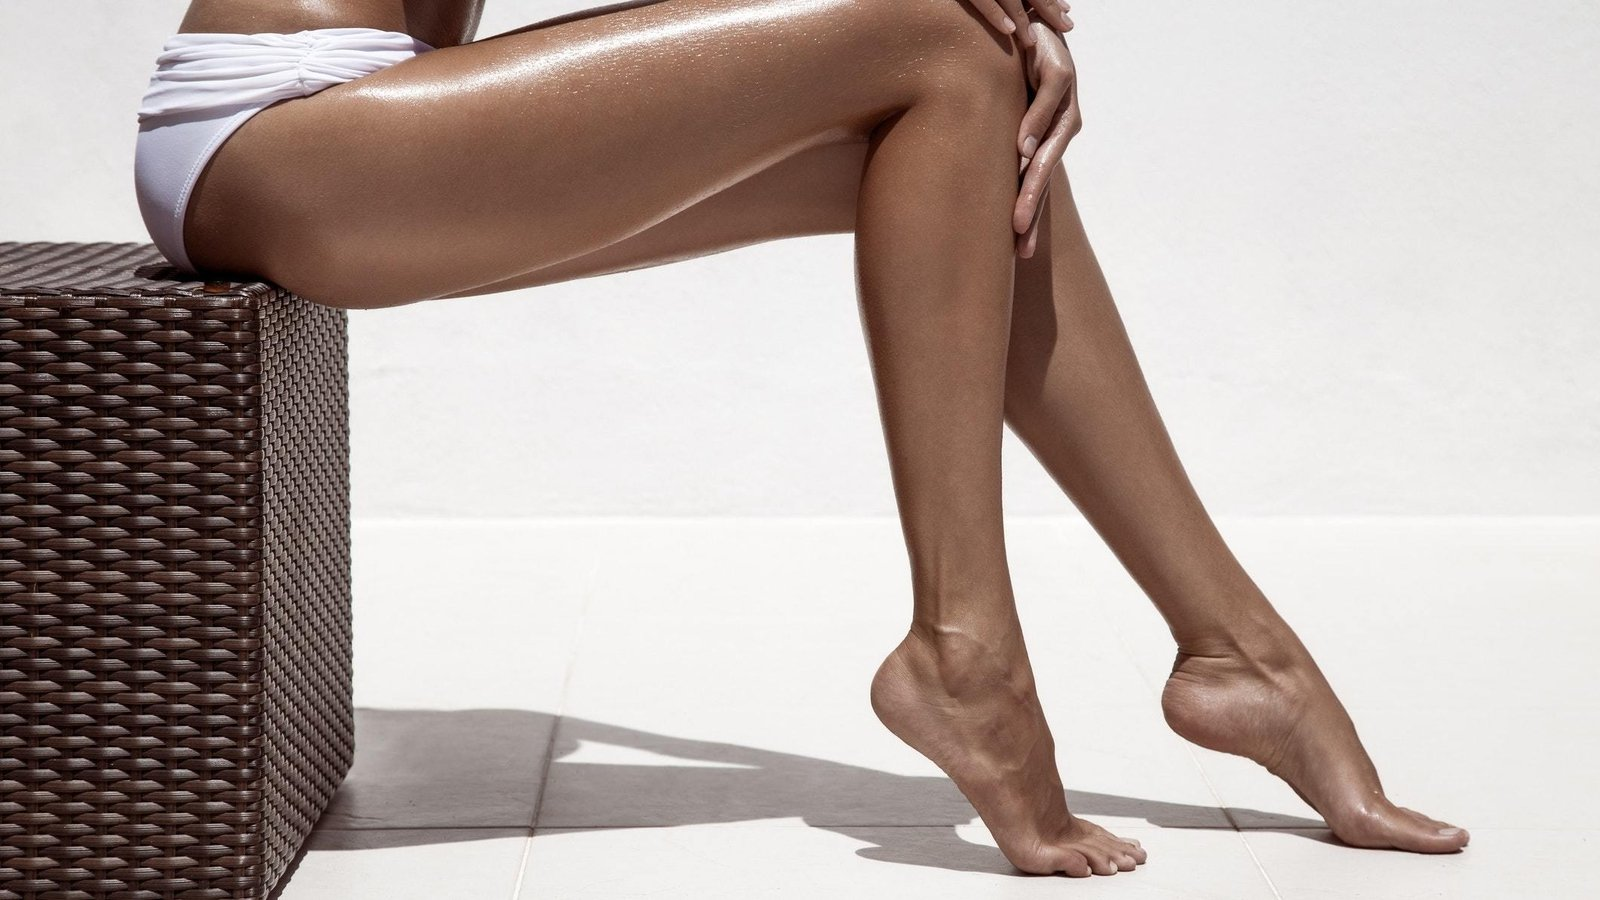 8 expert tips for flawless self-tanning in winter